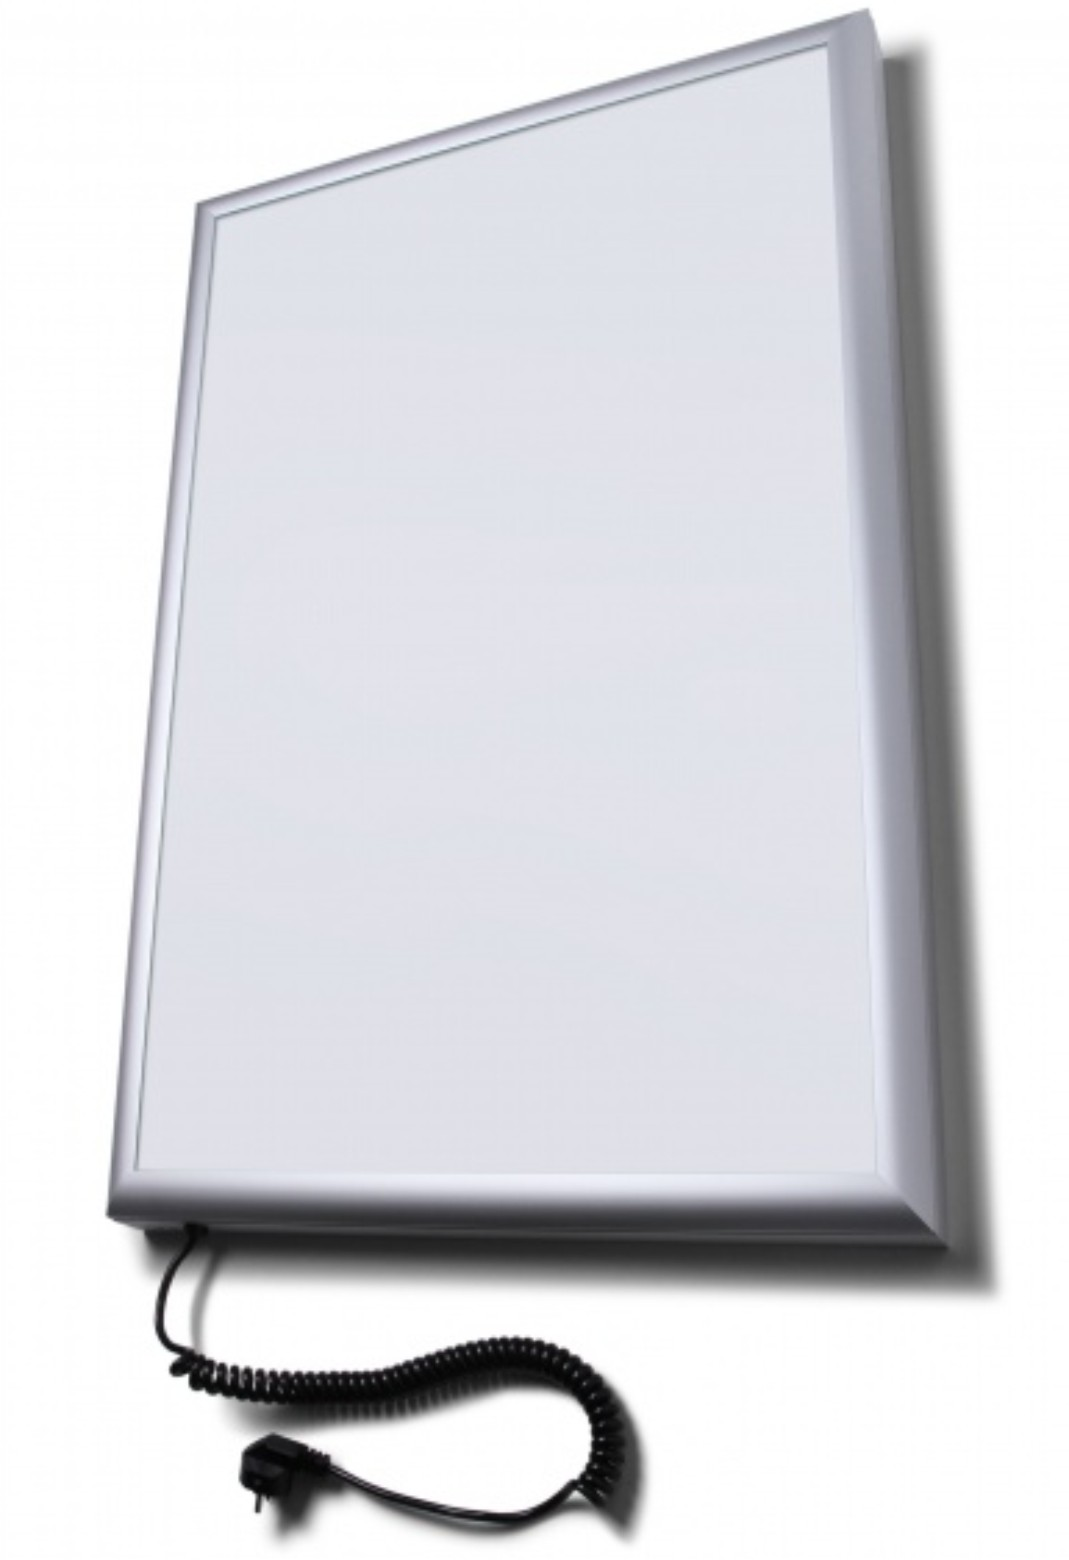 Flat front poster light box